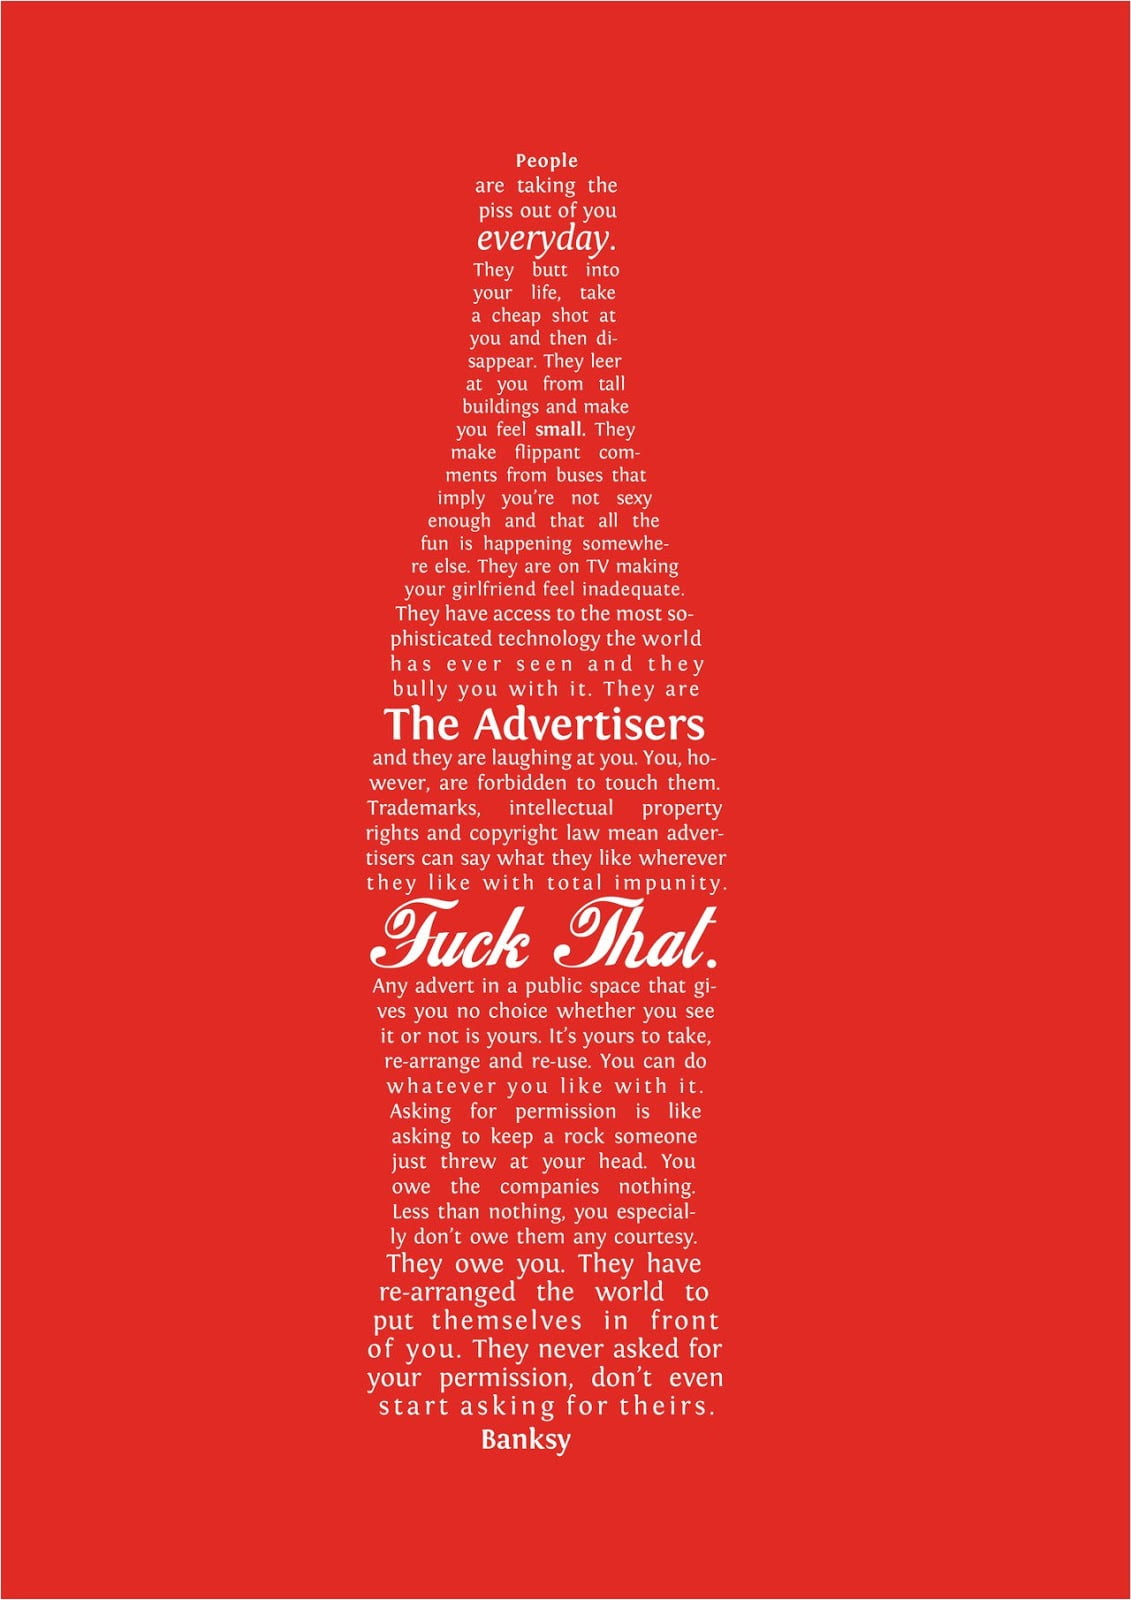 bansky bottle The Banksy Manifesto